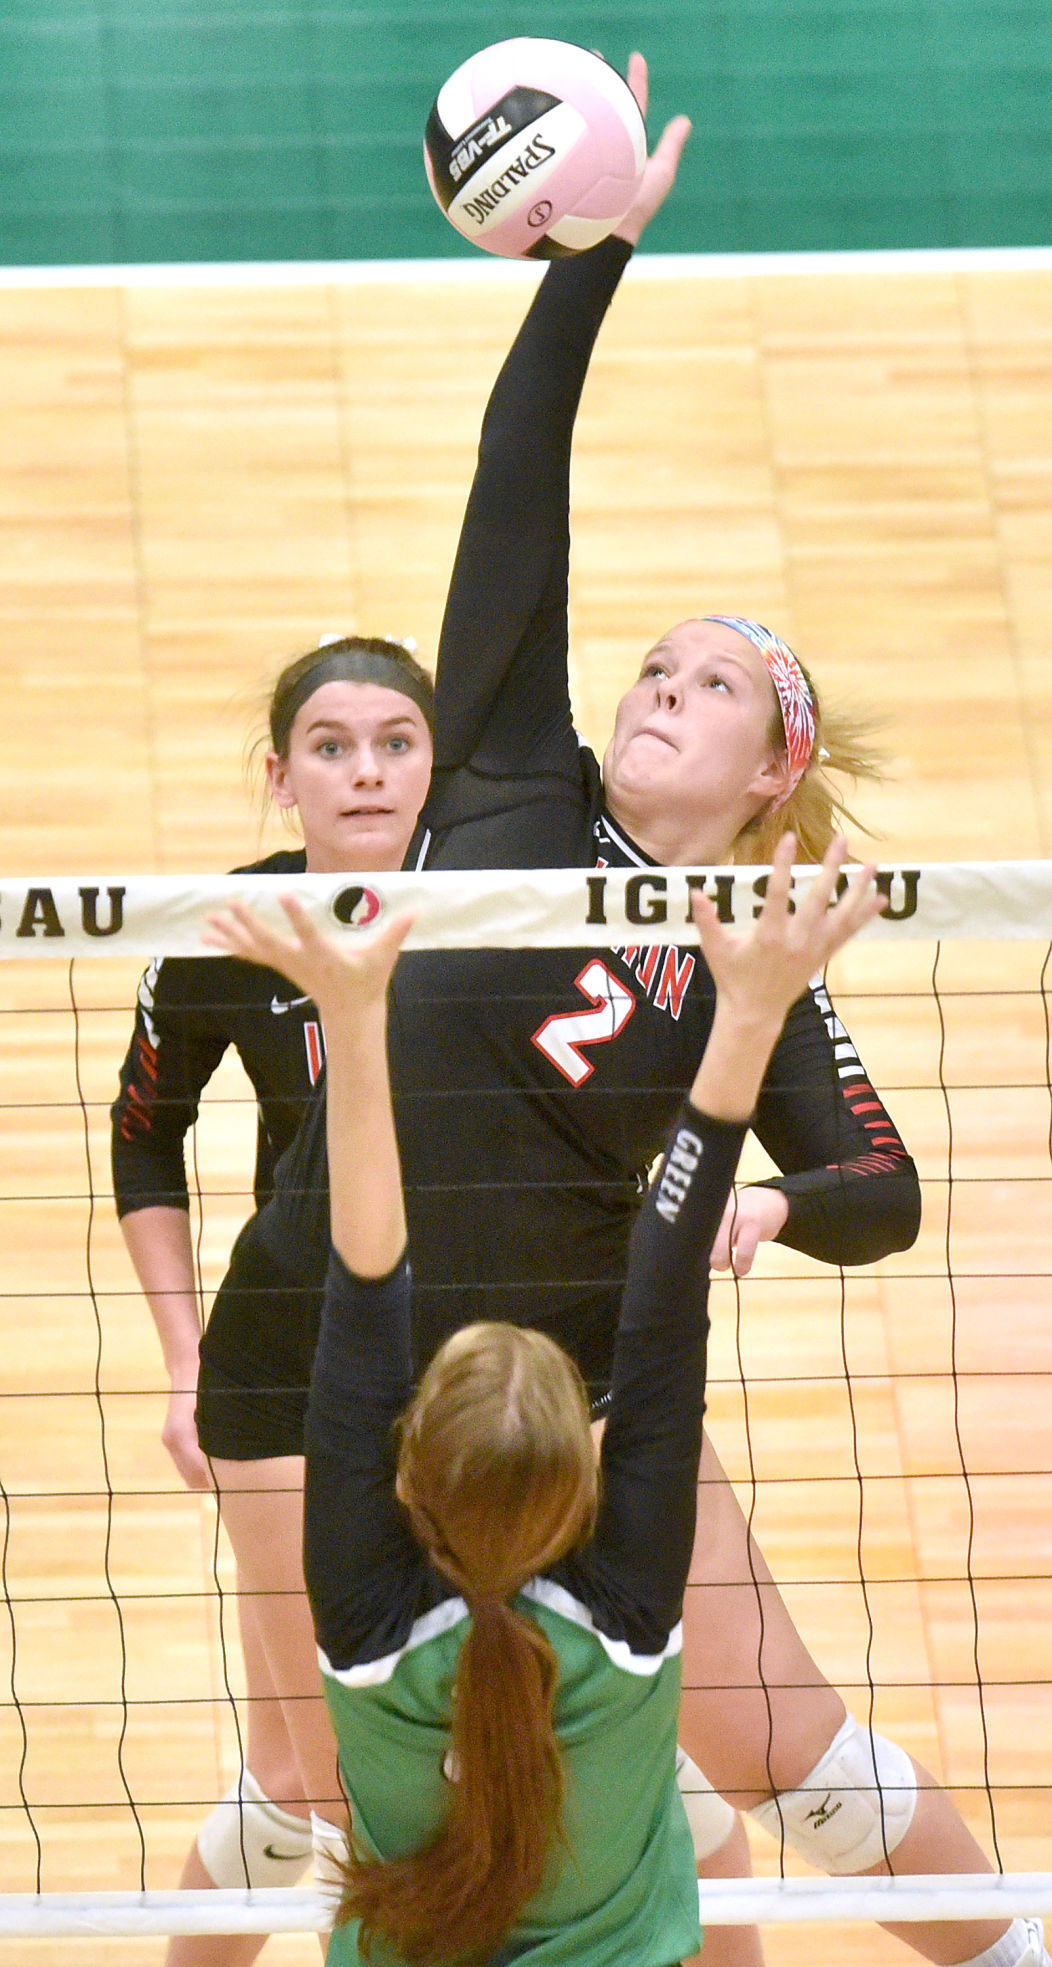 110916TH-Osage-Union-Vball-5